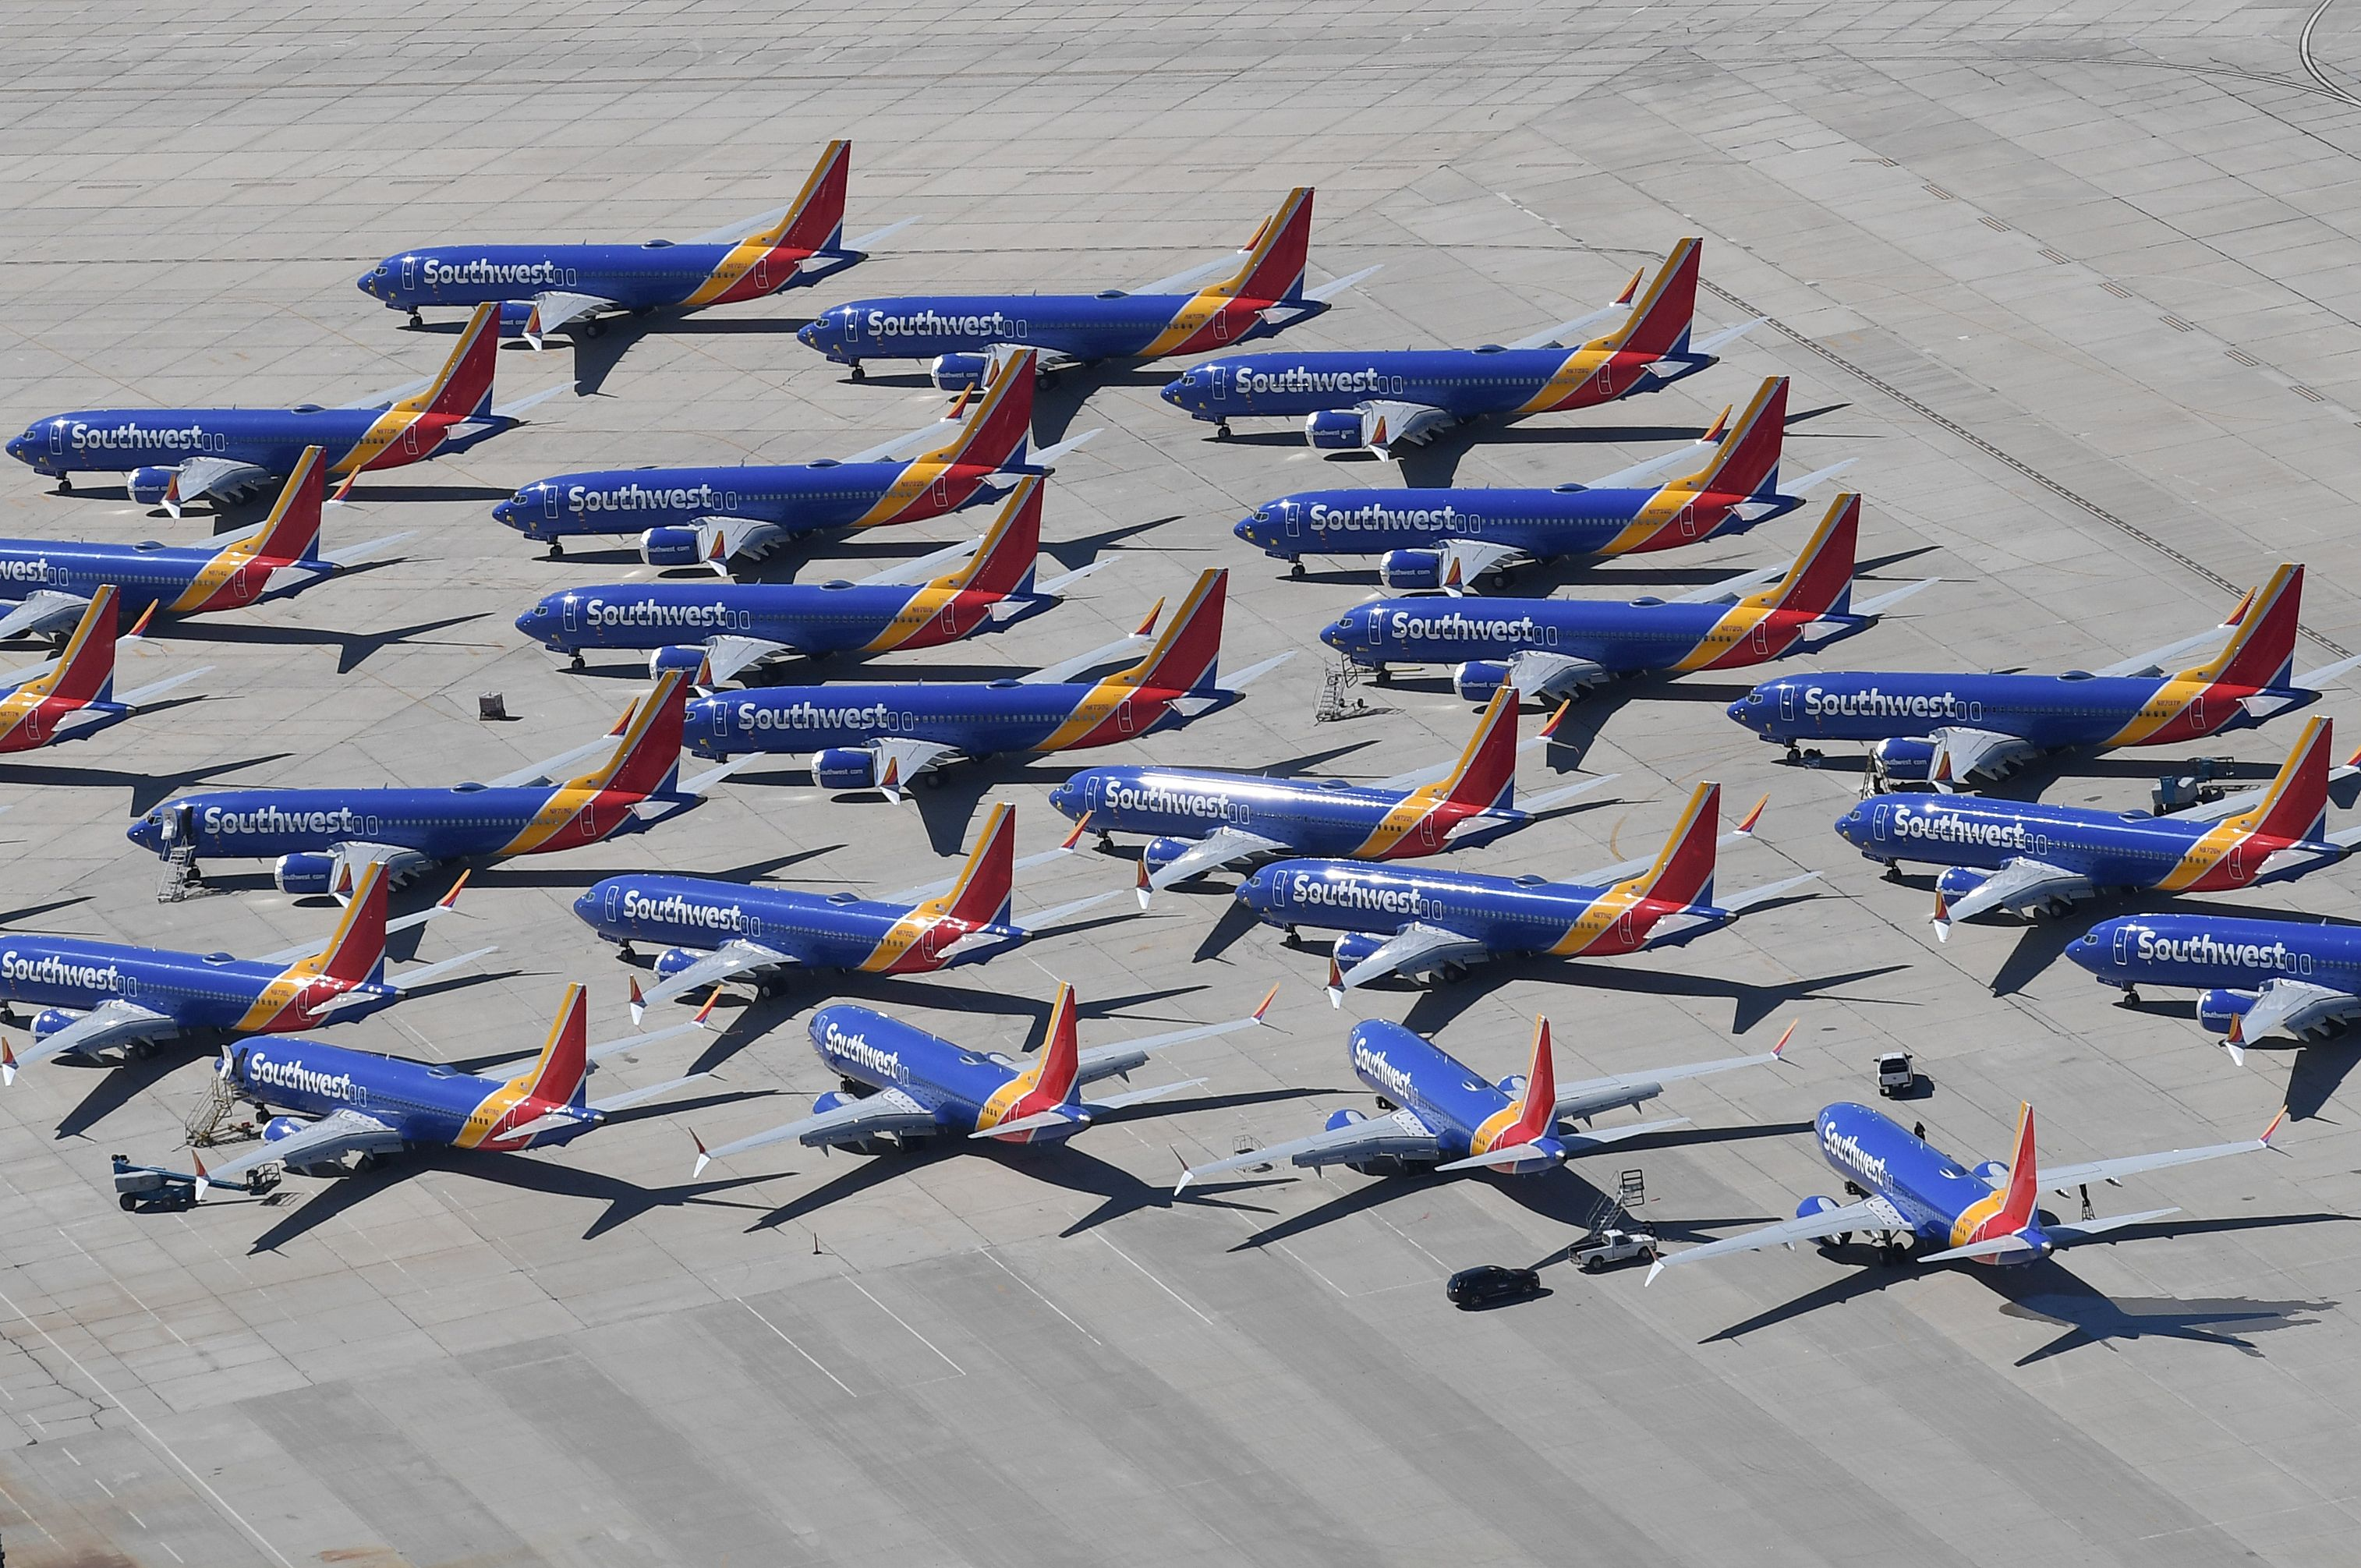 Resultado de imagen para Southwest Airlines Boeing 737 MAX grounded